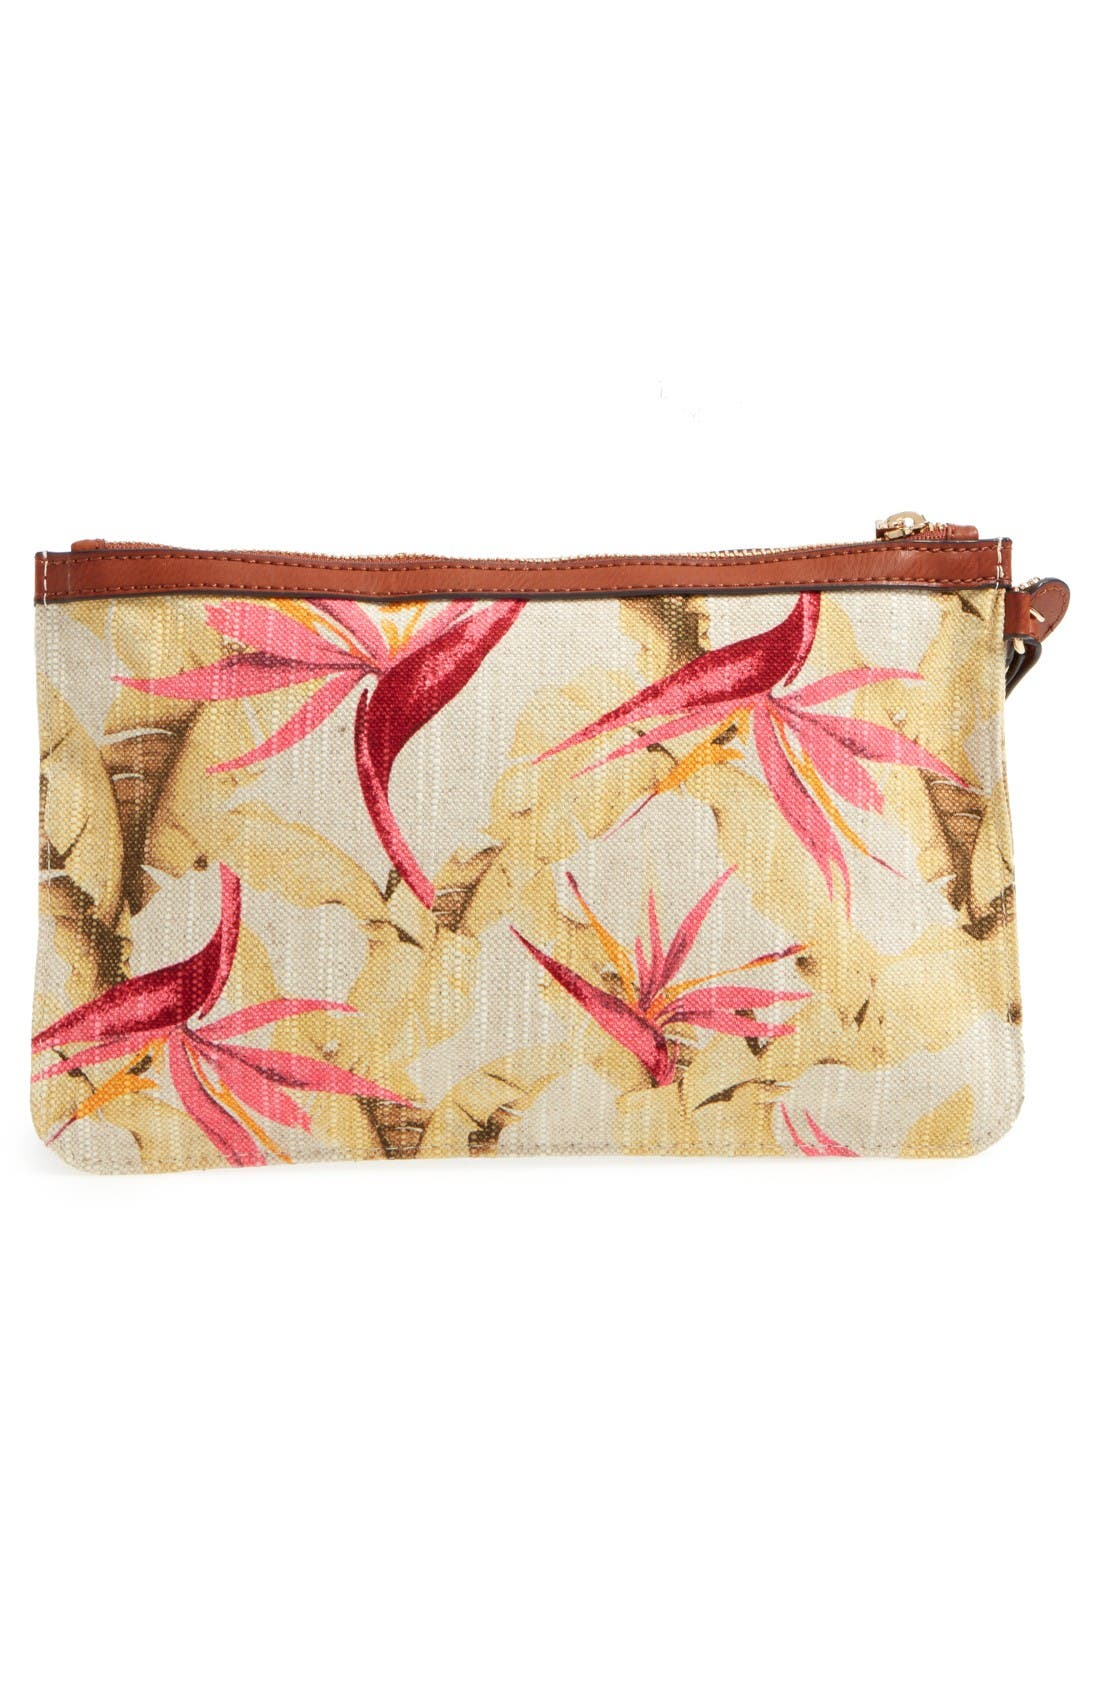 Boca Chica Beach Wristlet,                             Alternate thumbnail 3, color,                             Aloha